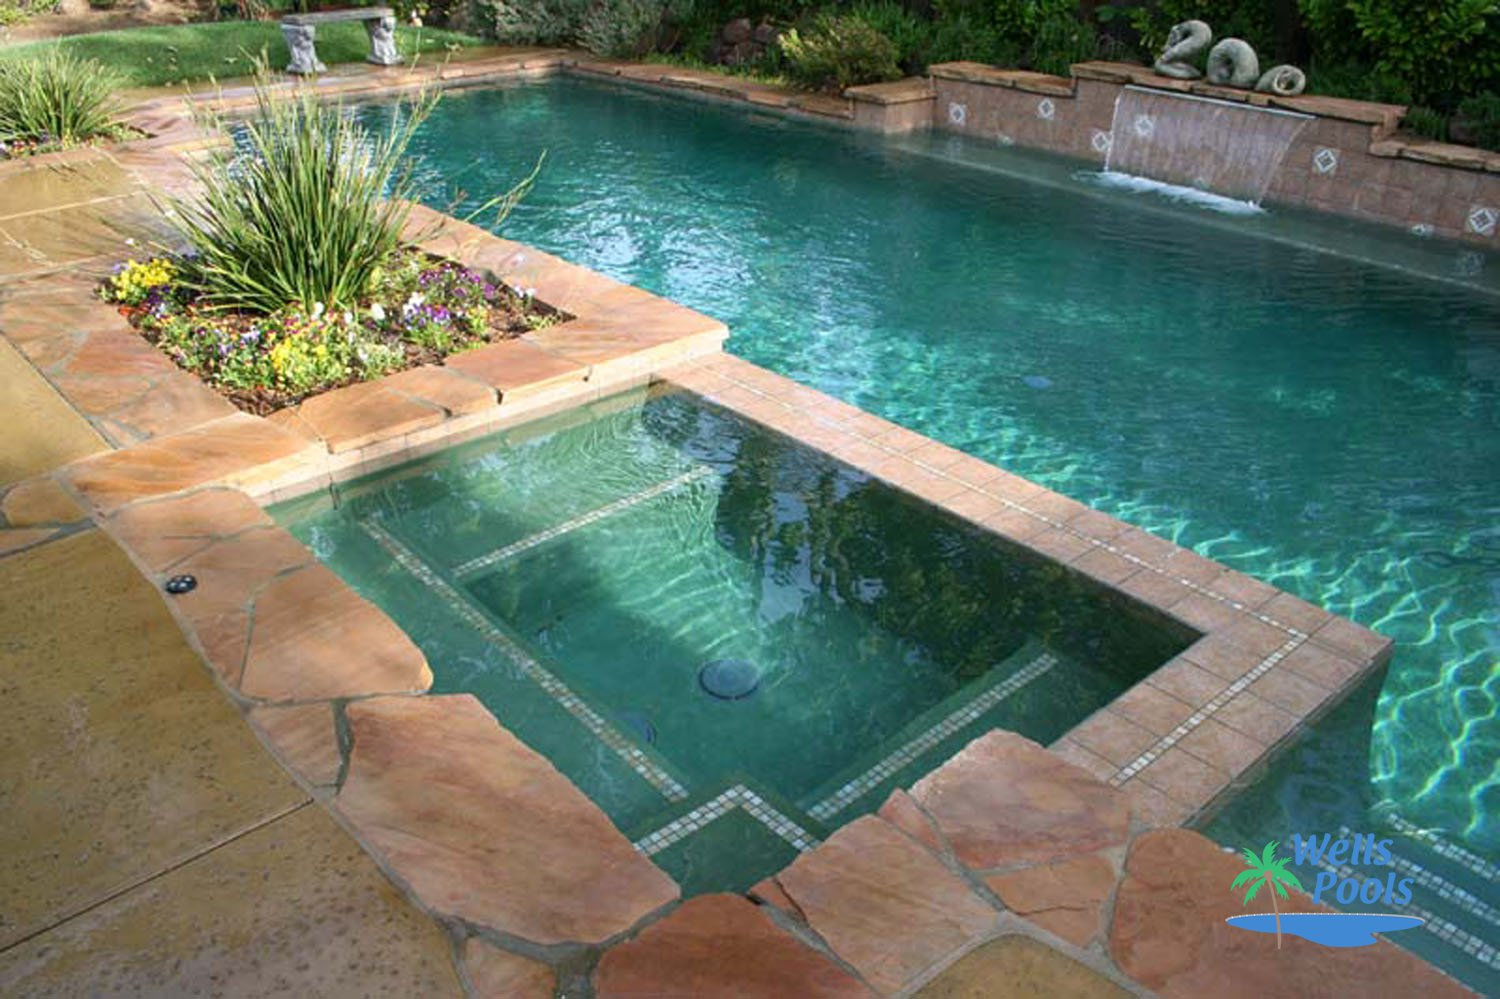 Jacuzzi Pool Ideas Inground Spas Construction Sacramento Folsom El Dorado Hills